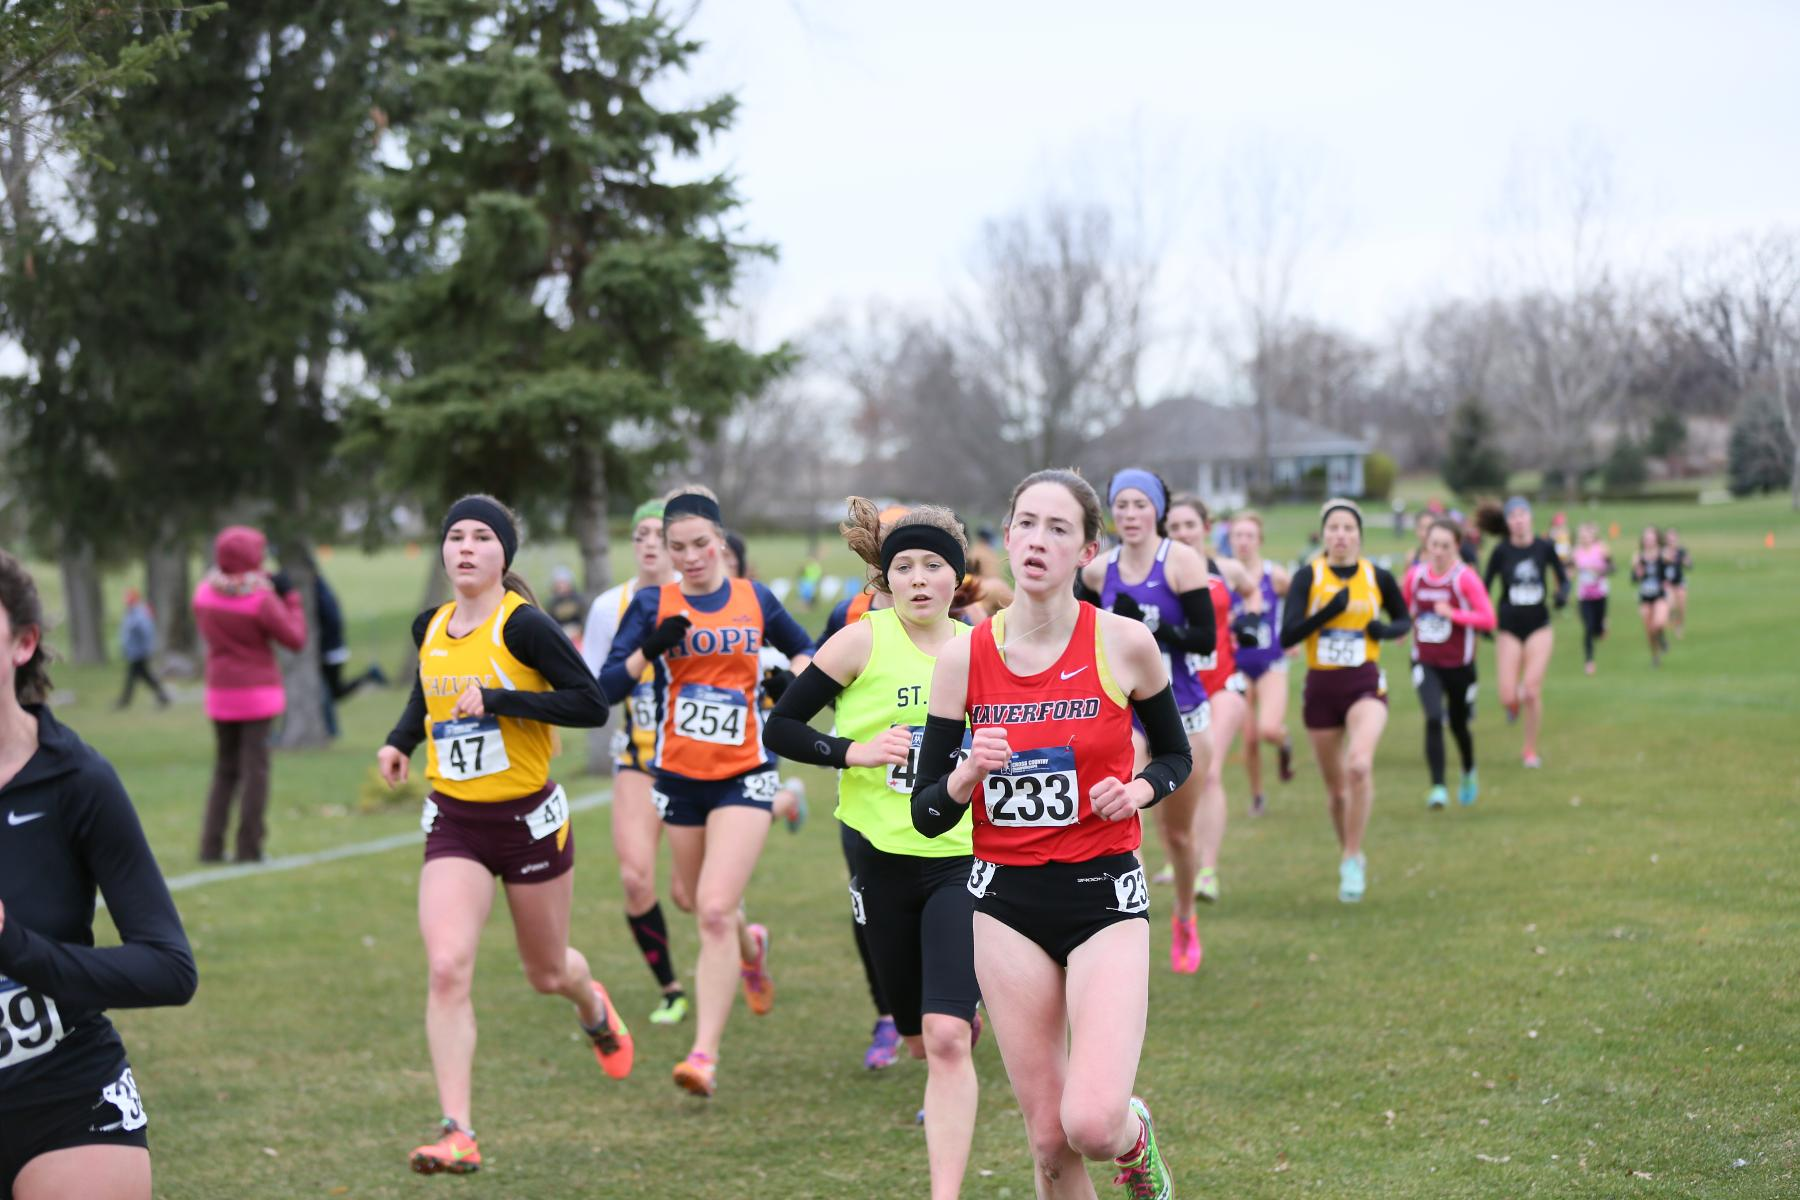 michigan state cross country meet 2015 results iron